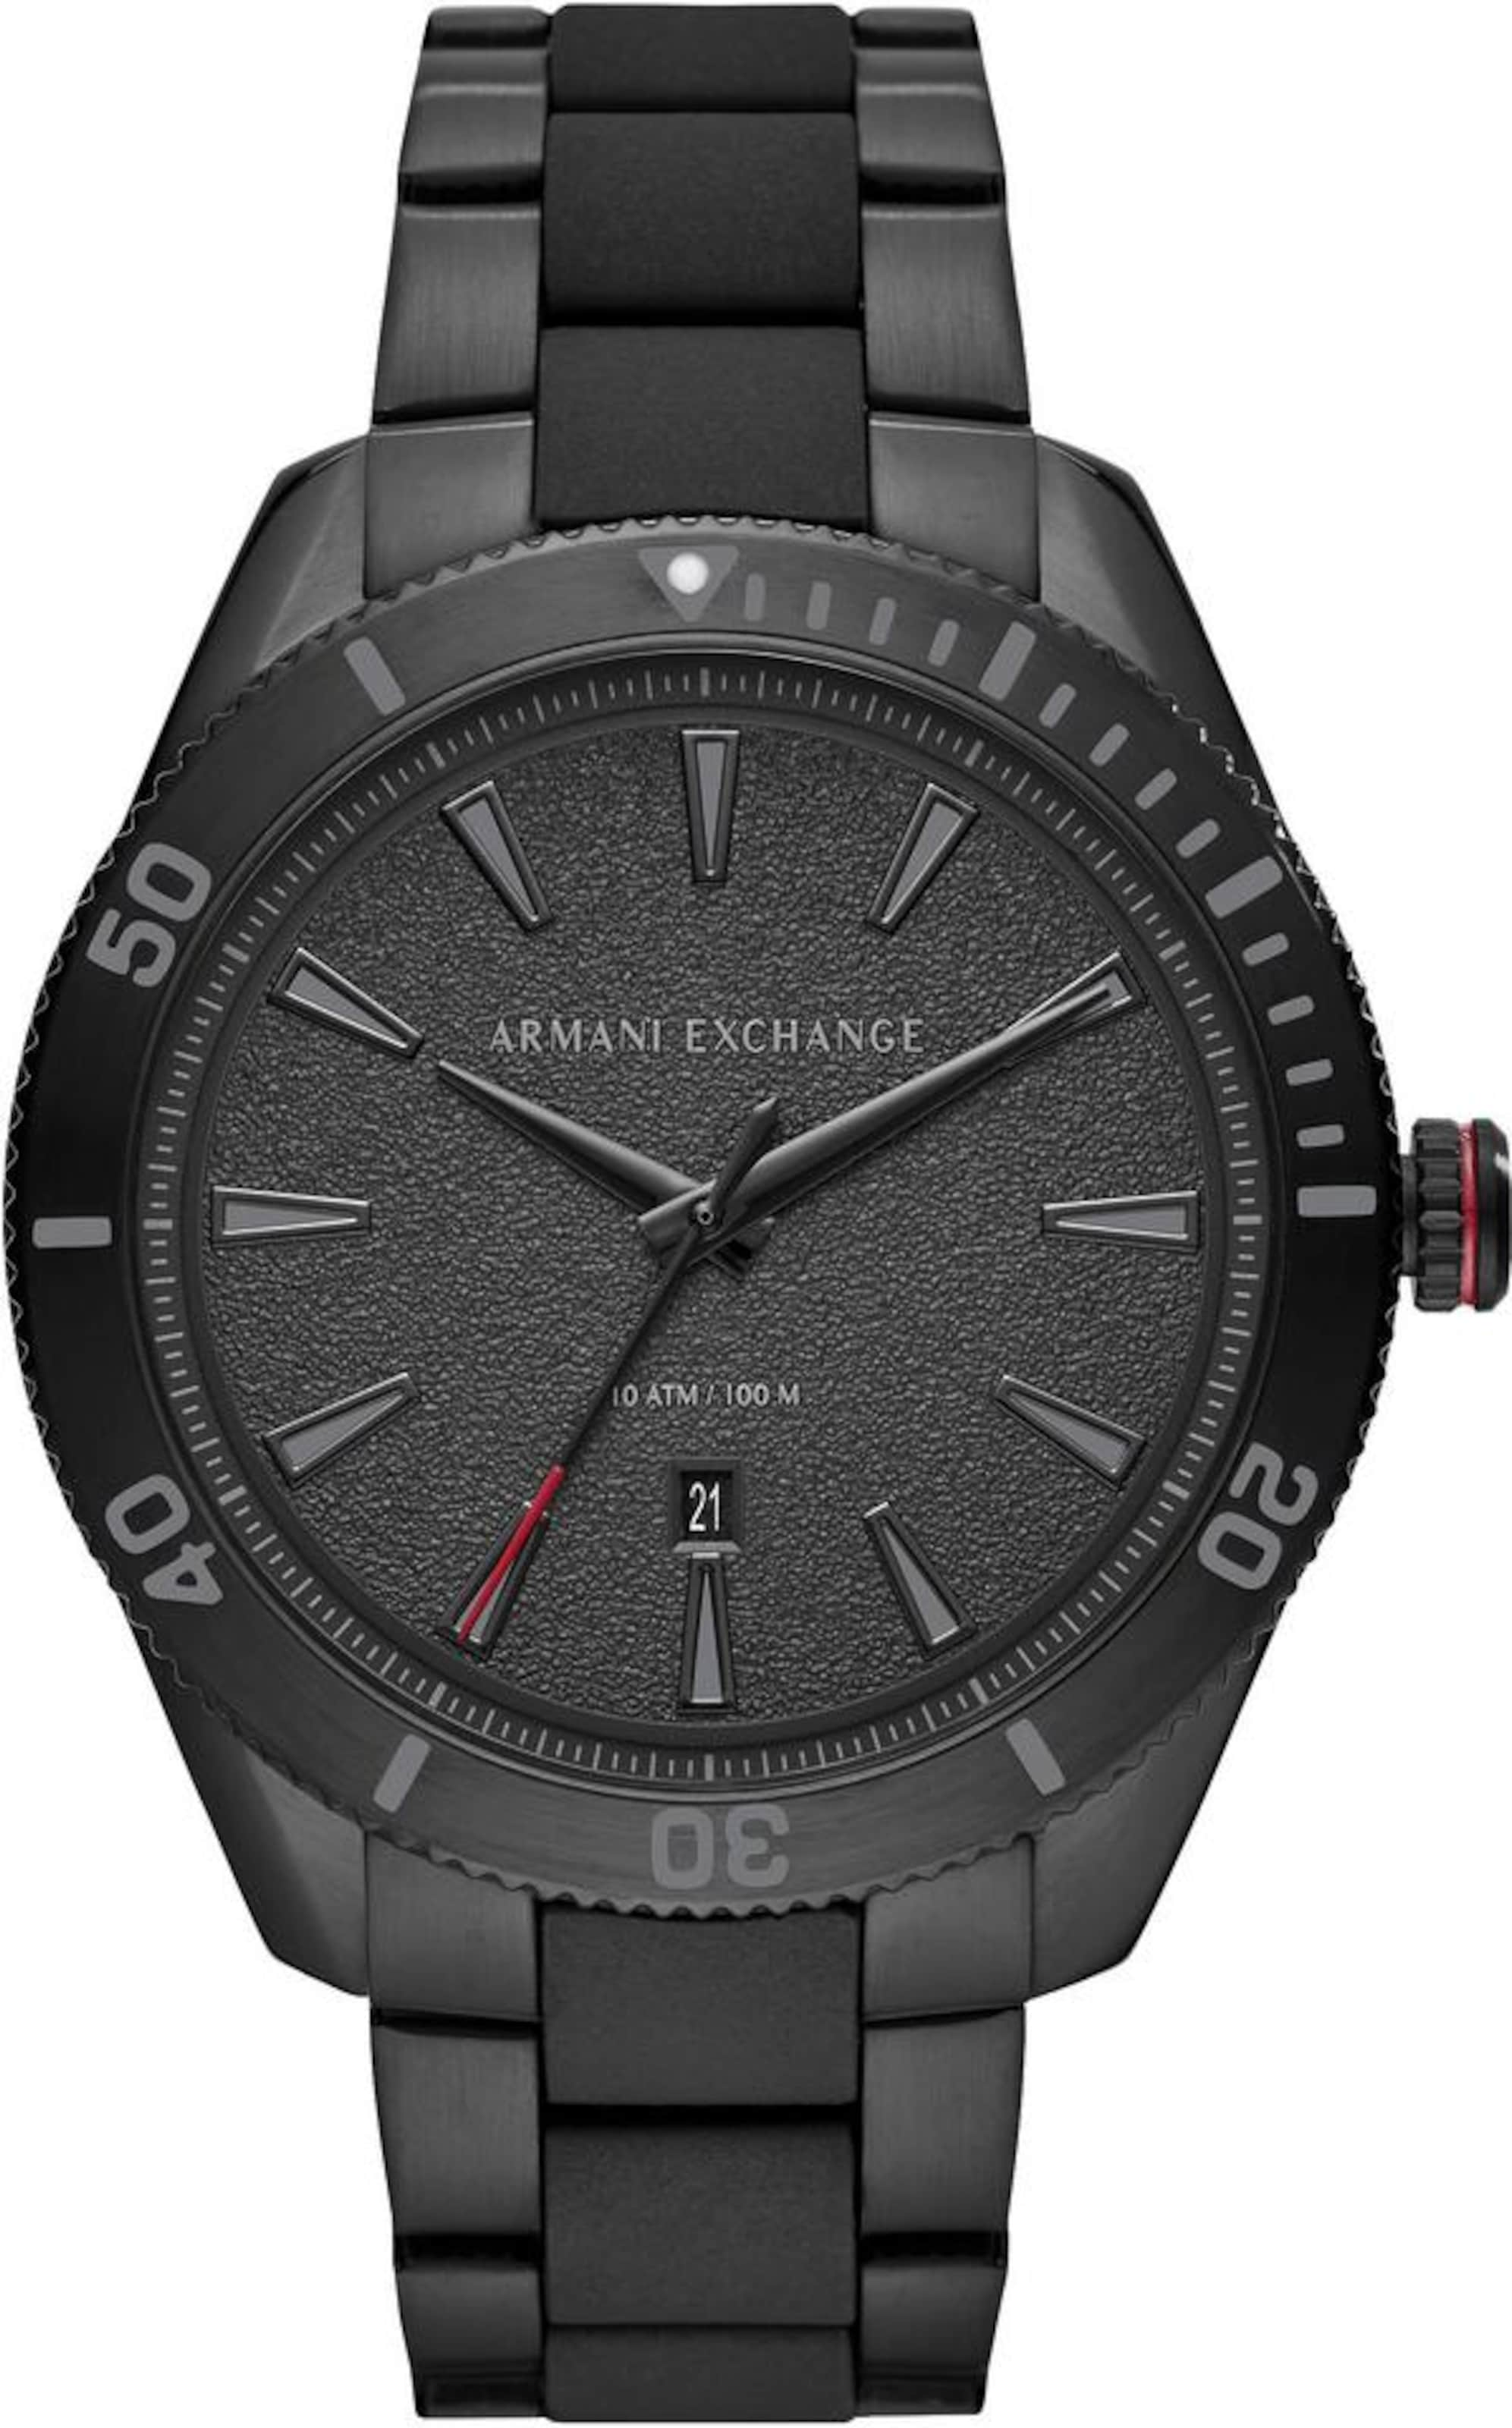 Exchange Exchange Armani Quarzuhr In Schwarz Quarzuhr Armani In Schwarz Armani Exchange 0wO8Pnk